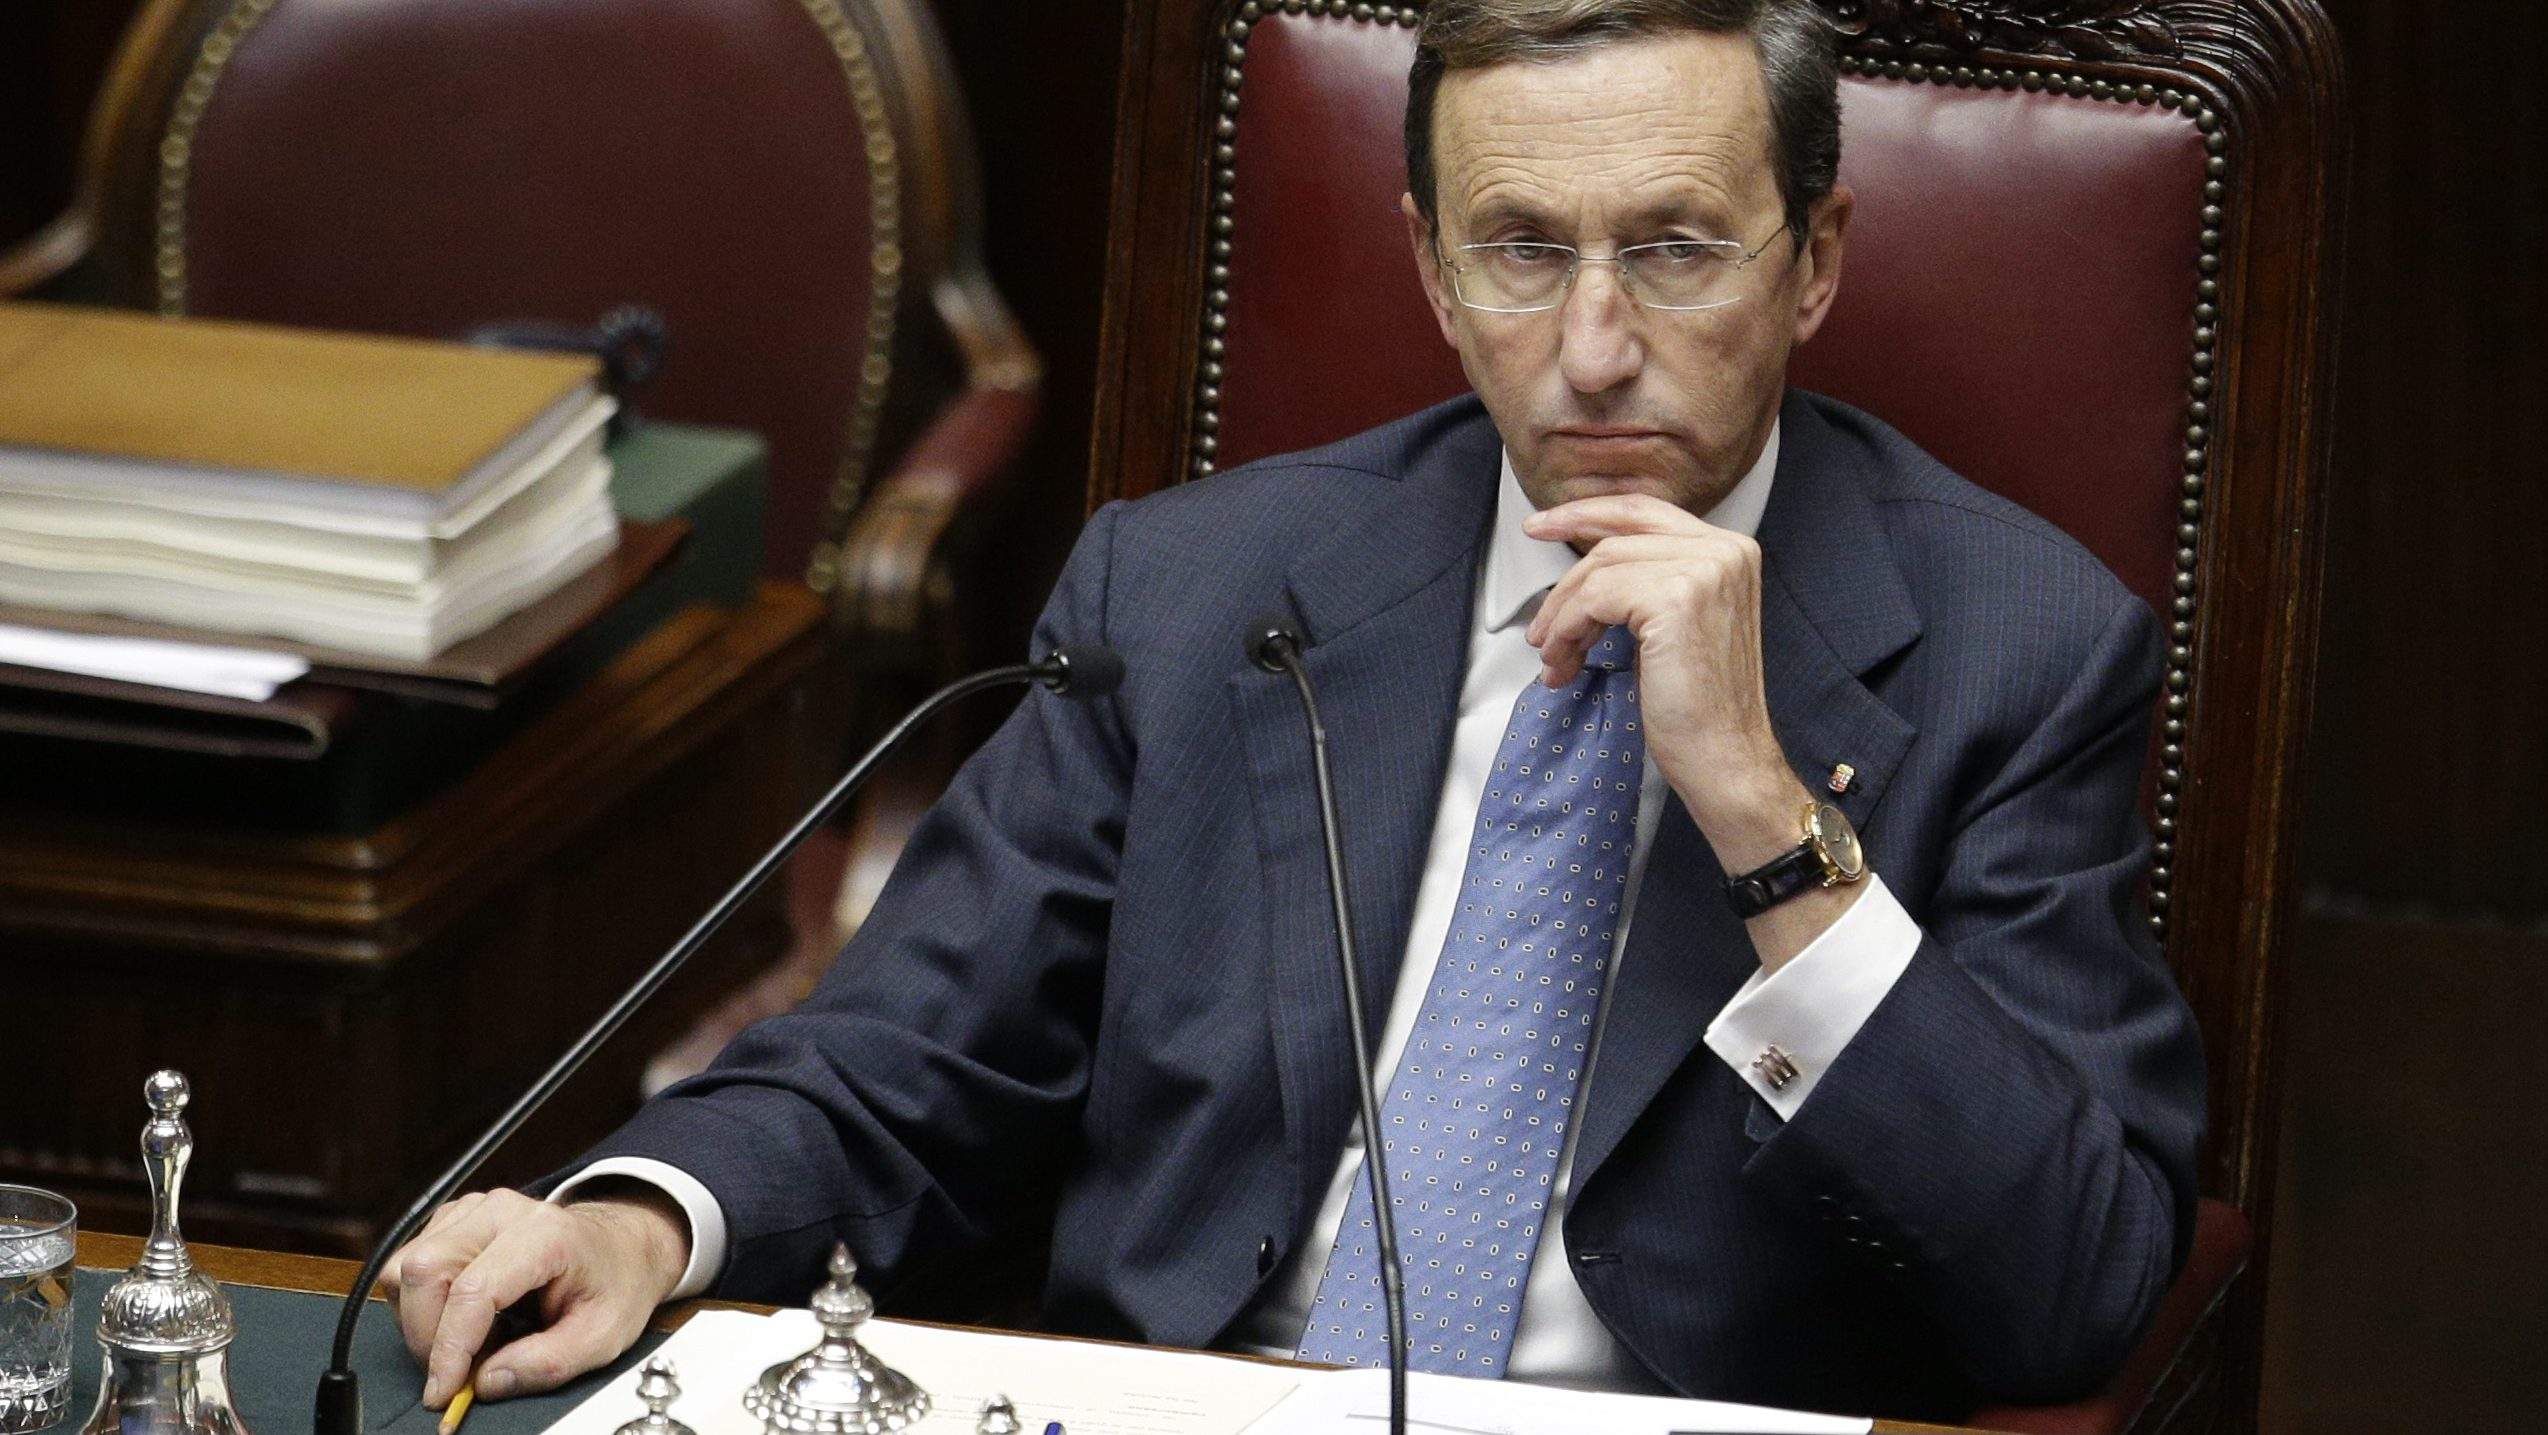 Lower Chamber President Gianfranco Fini looks on prior to a confidence vote at the Lower Chamber, in Rome, Friday, Dec. 21, 2012. (AP Photo/Andrew Medichini)